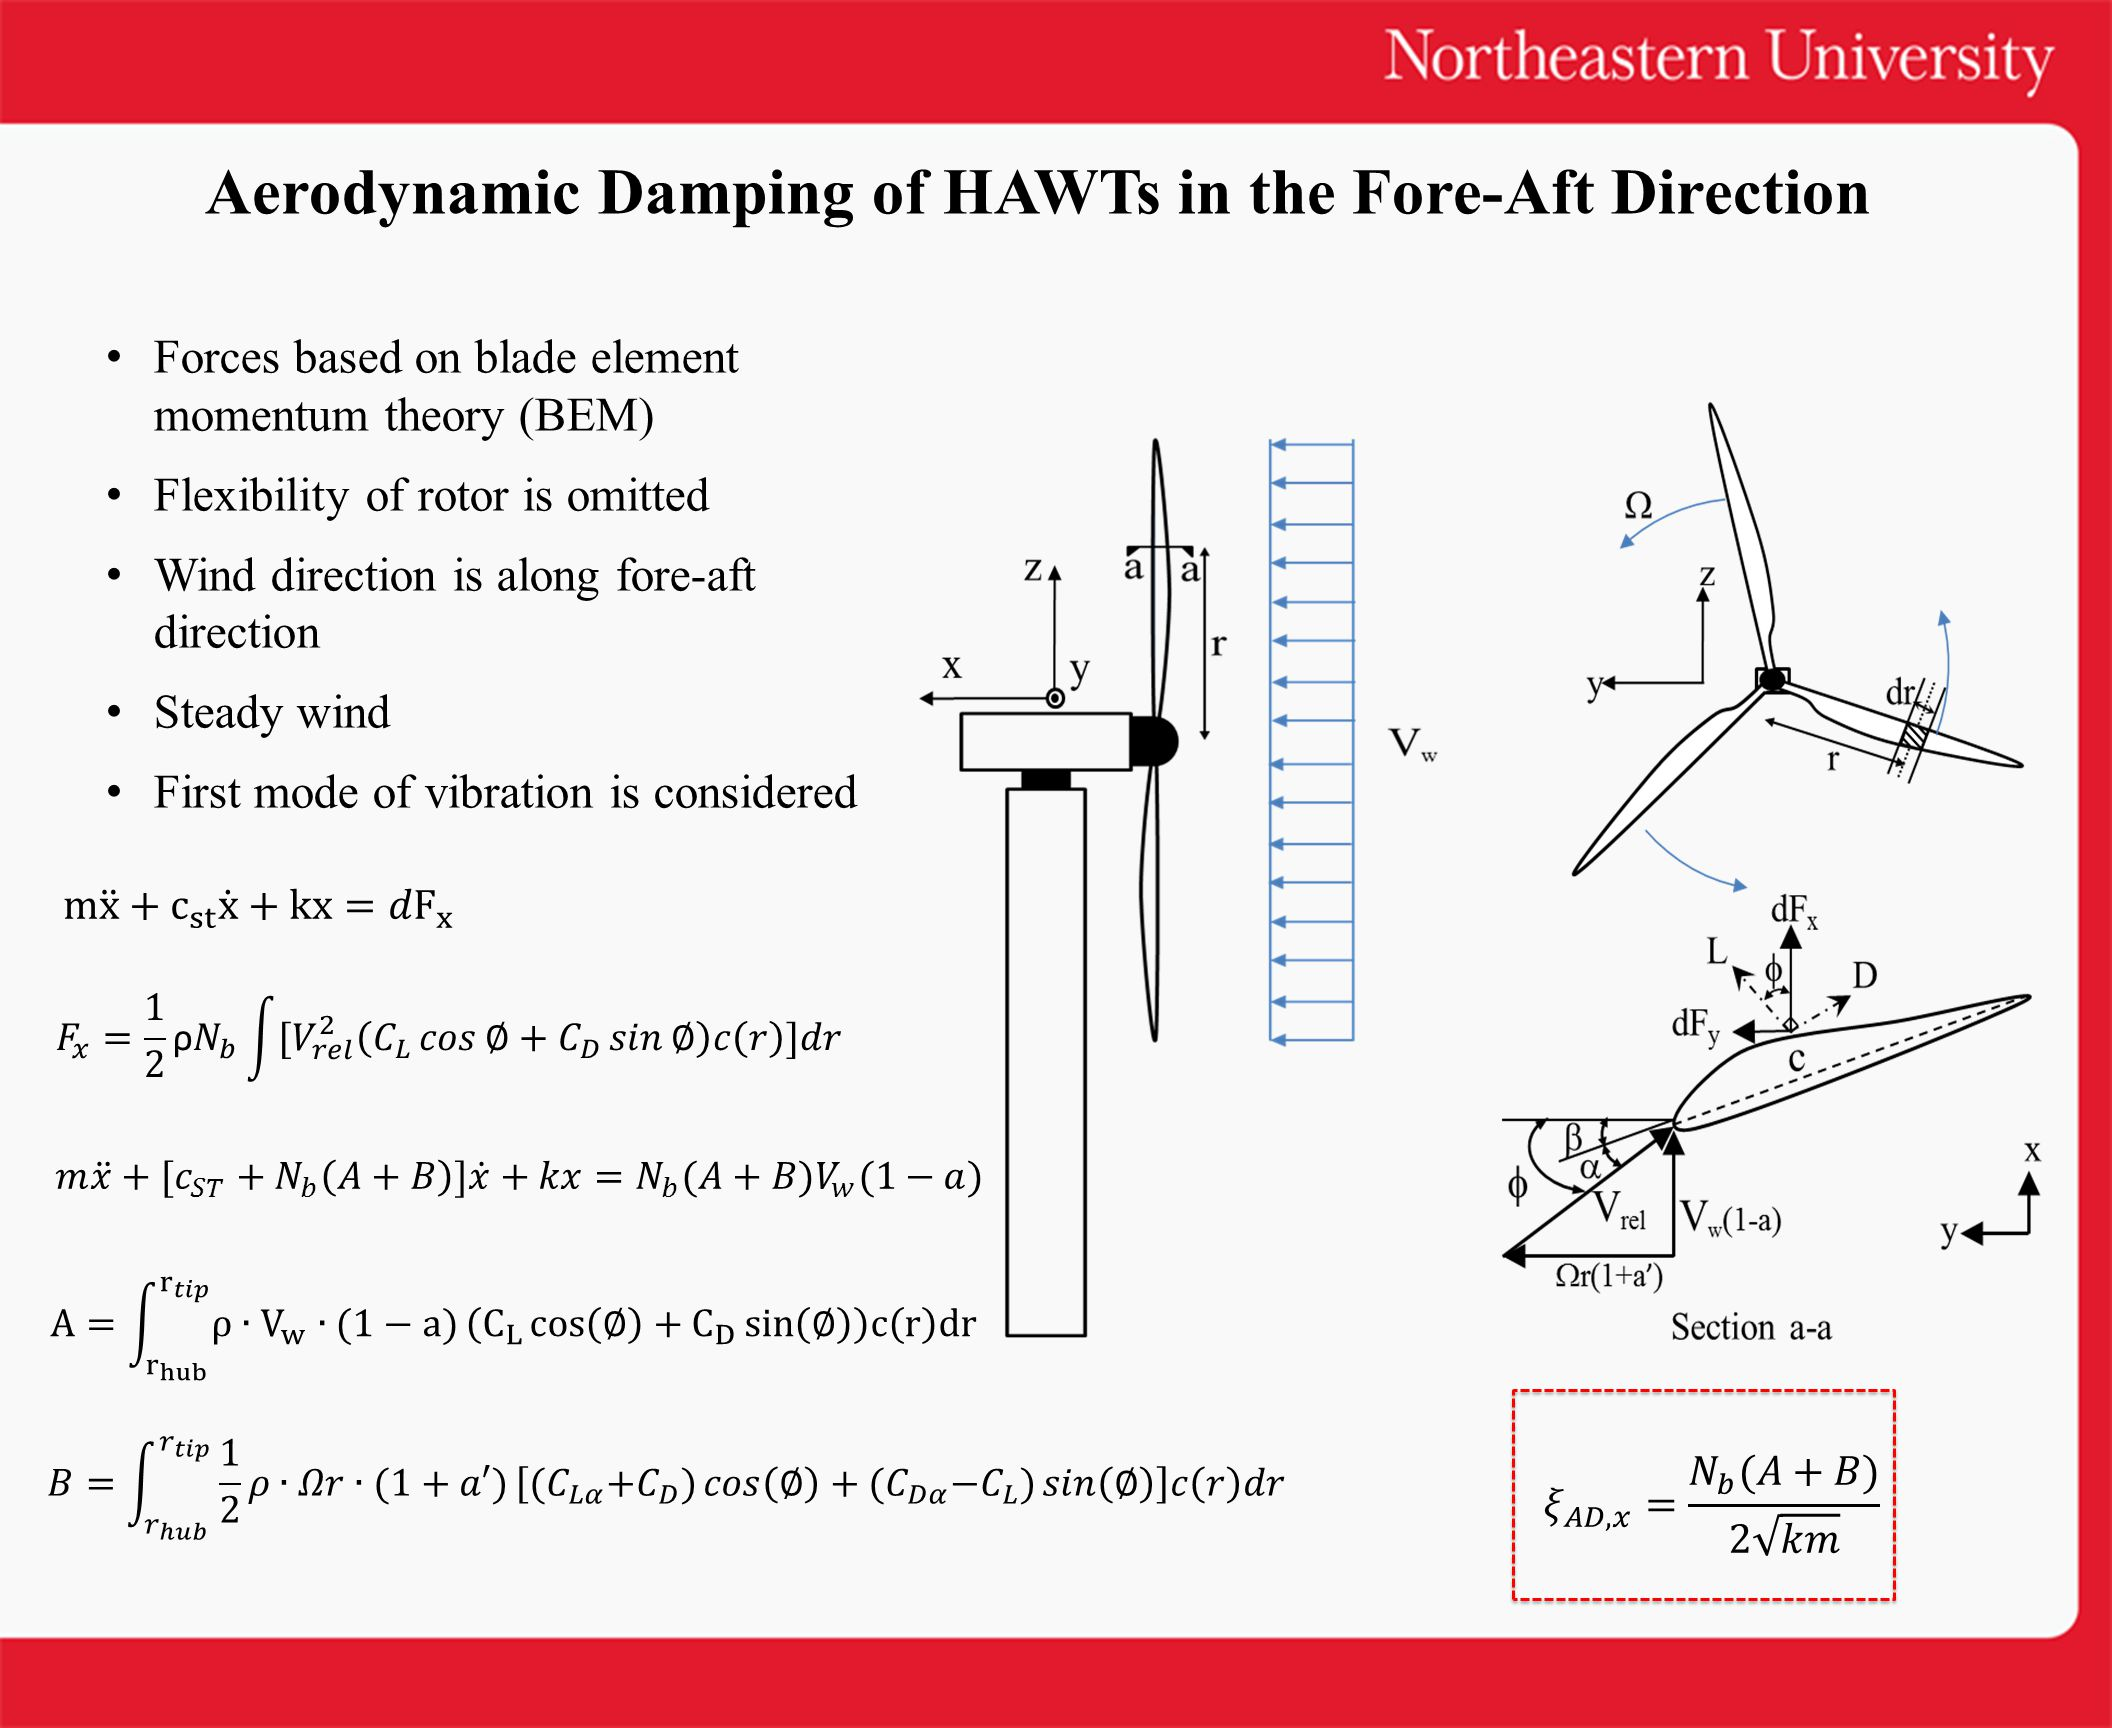 Aerodynamic Damping of HAWTs in the Side-to-Side Direction